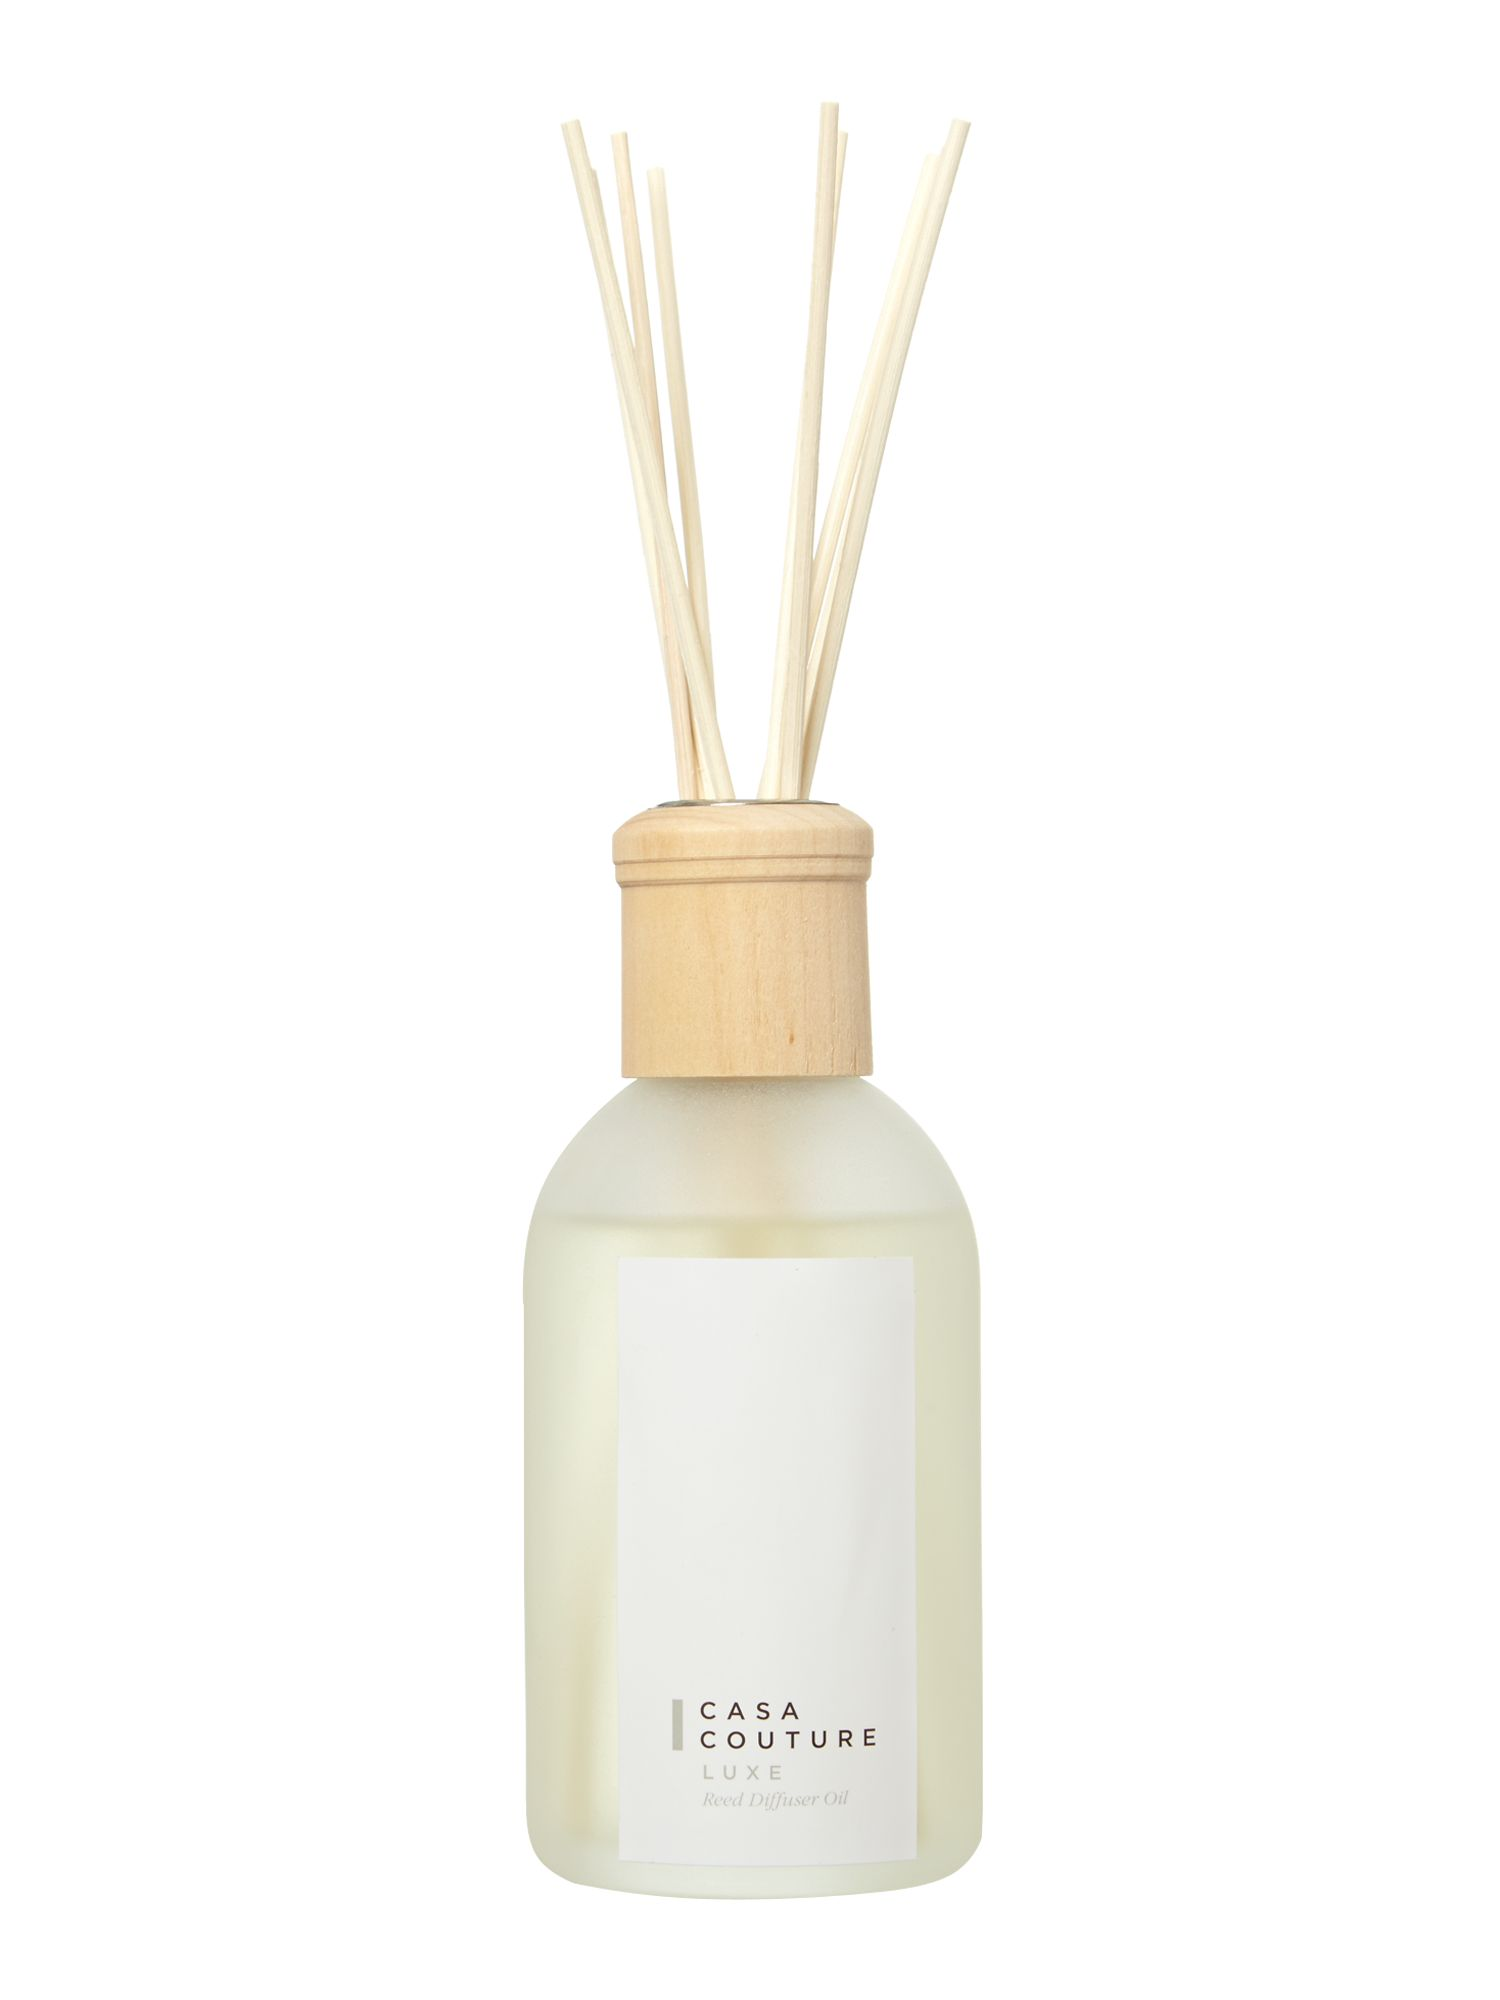 Luxe diffuser